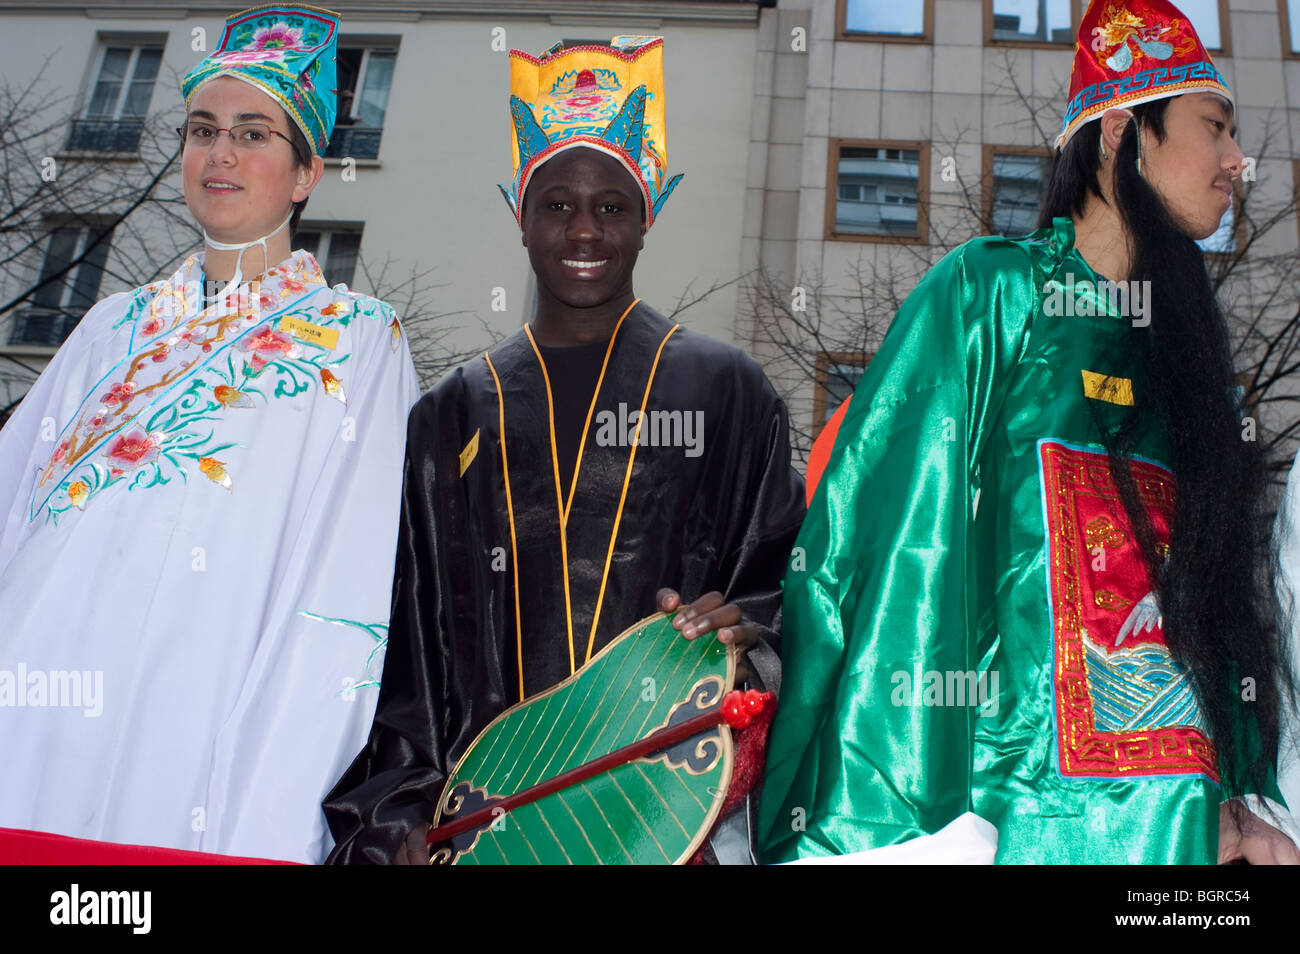 """Paris, France, group of diverse teenagers, Teens in Traditional Costumes Parading in """"Chinese new year"""" Carnival Stock Photo"""